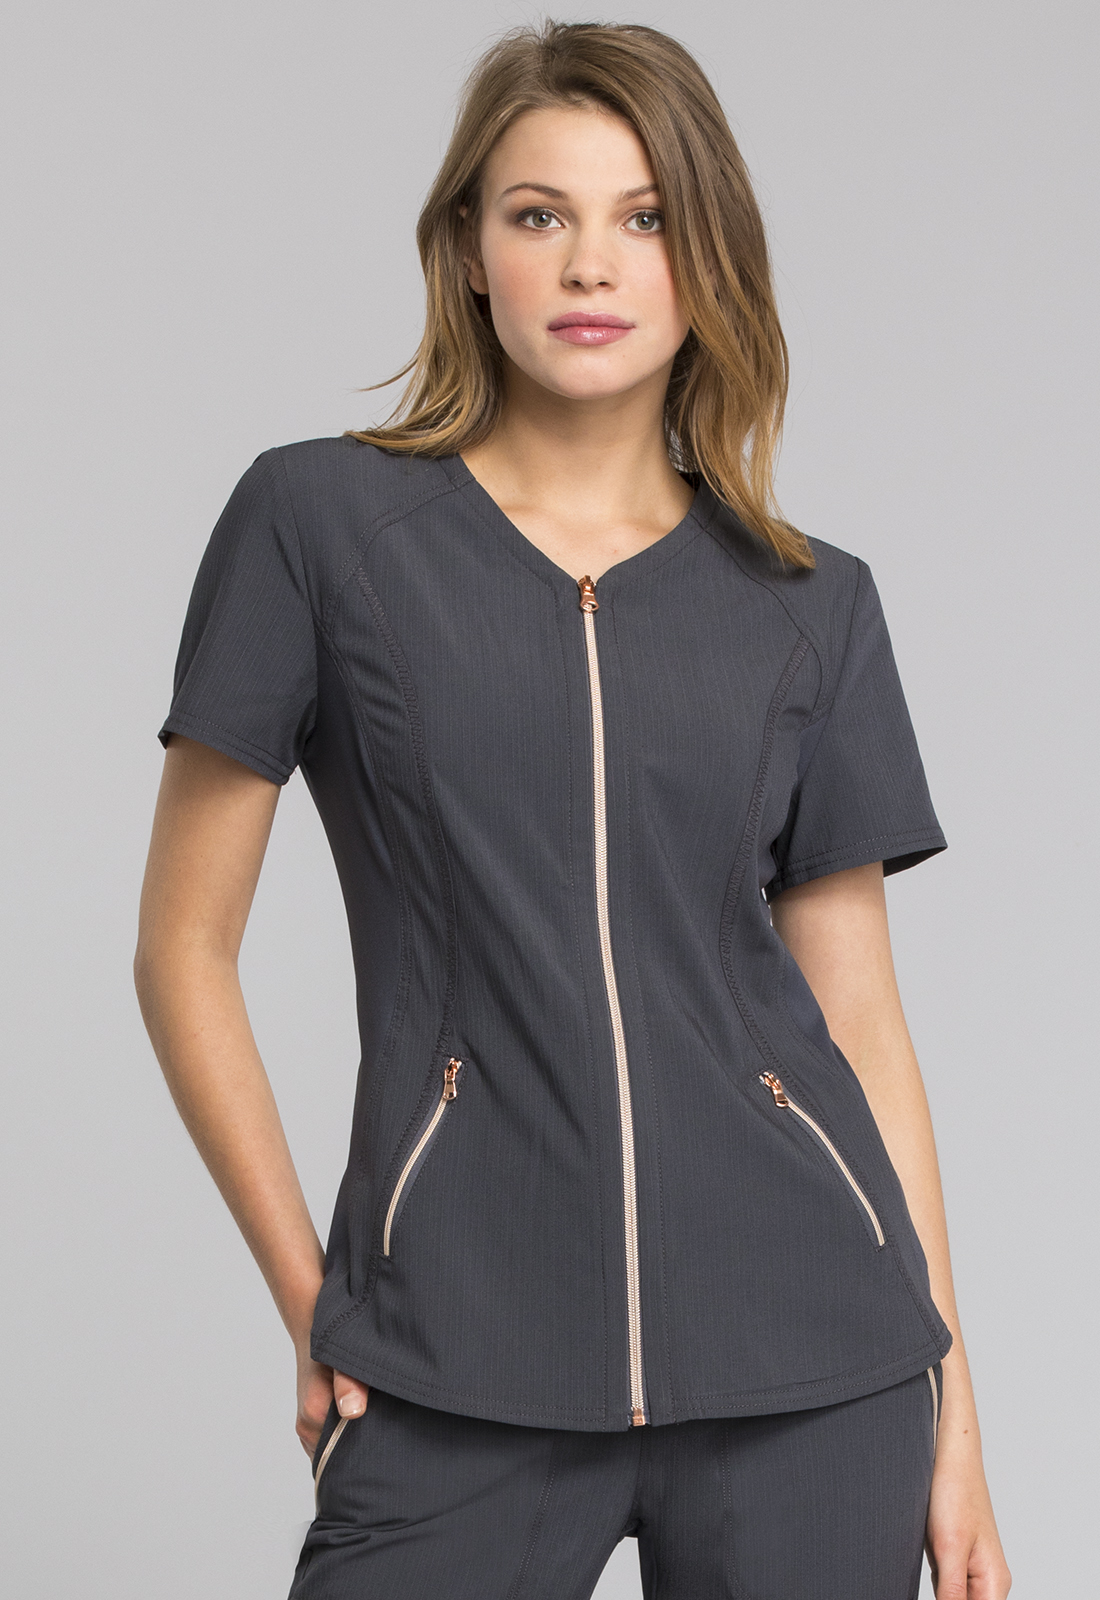 V-Neck Zip Front Top